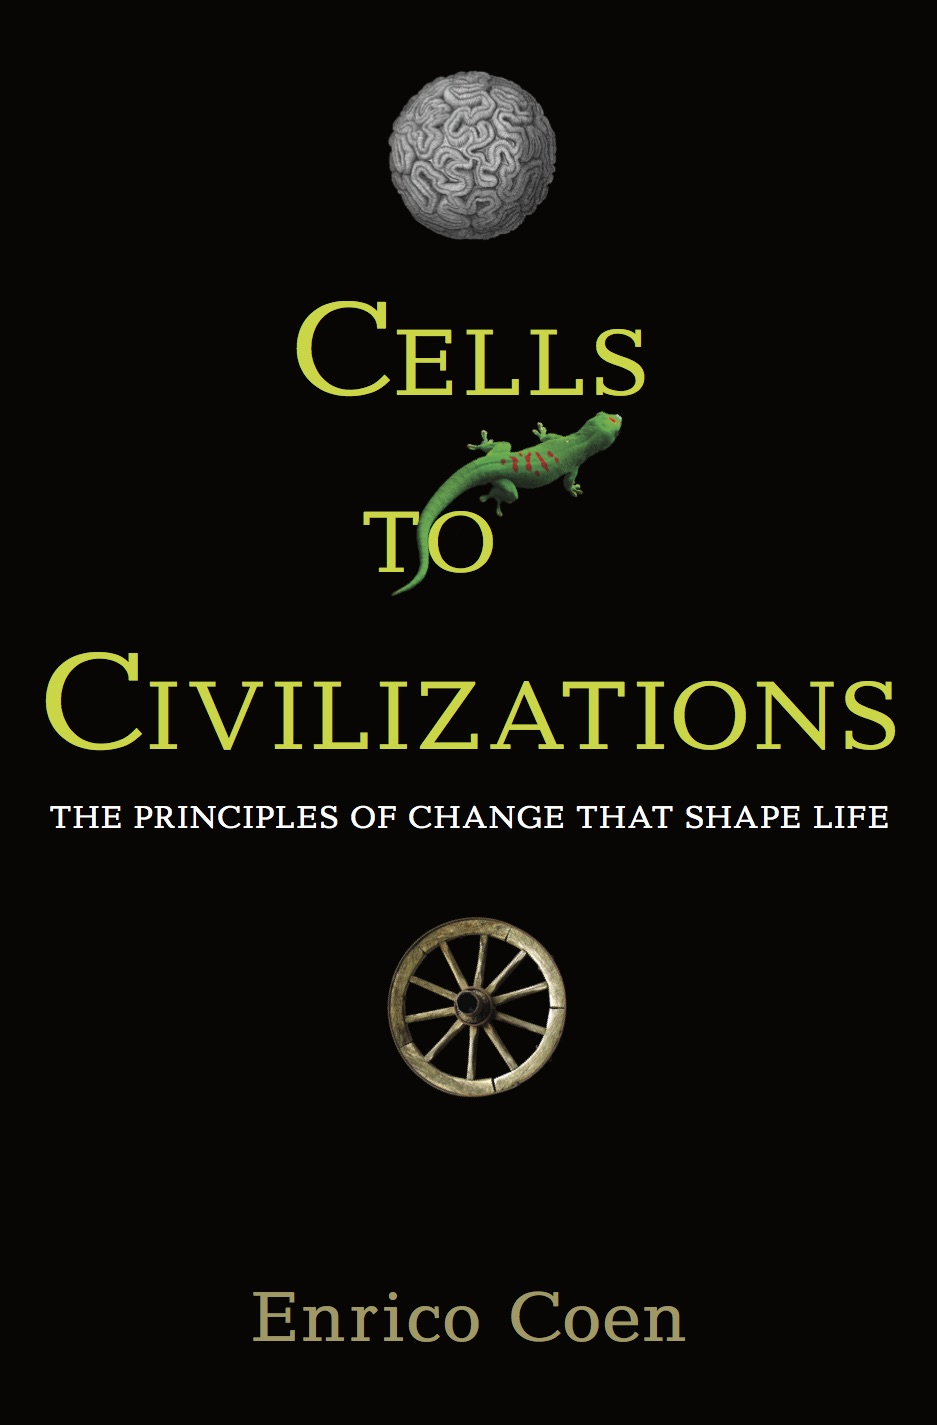 Cells to Civilizations cover.jpg